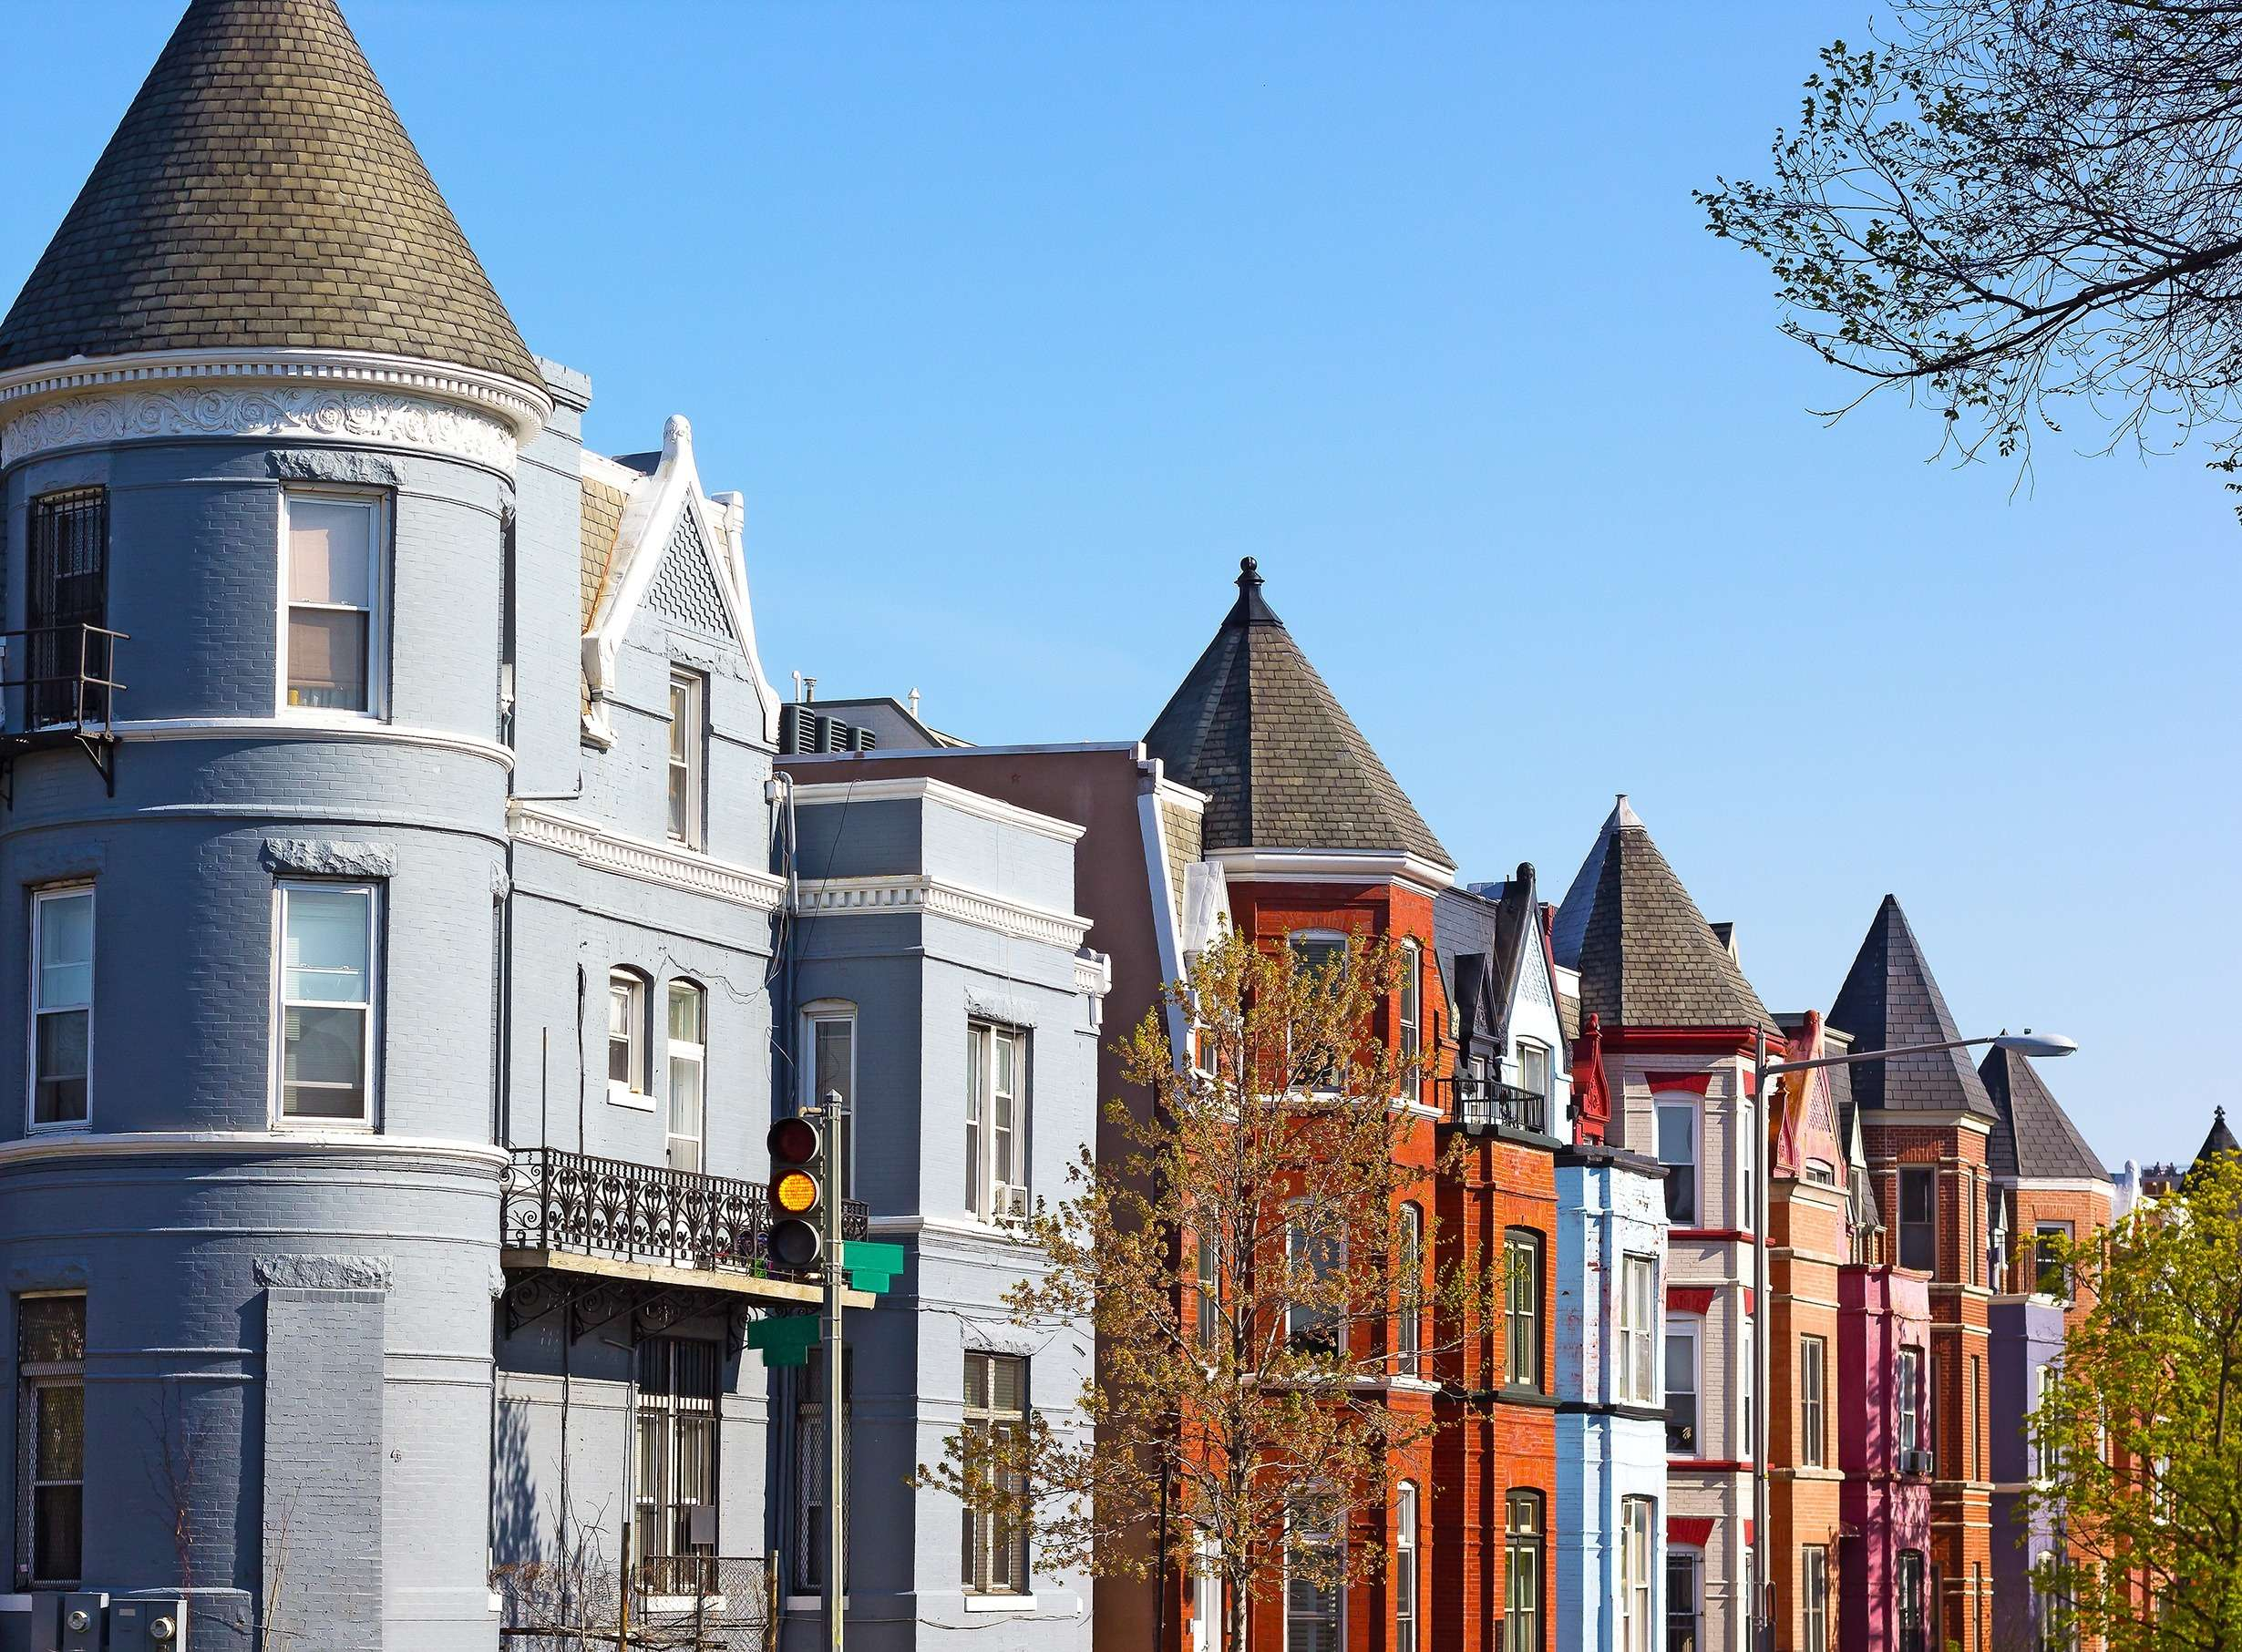 Row of houses in Washington DC